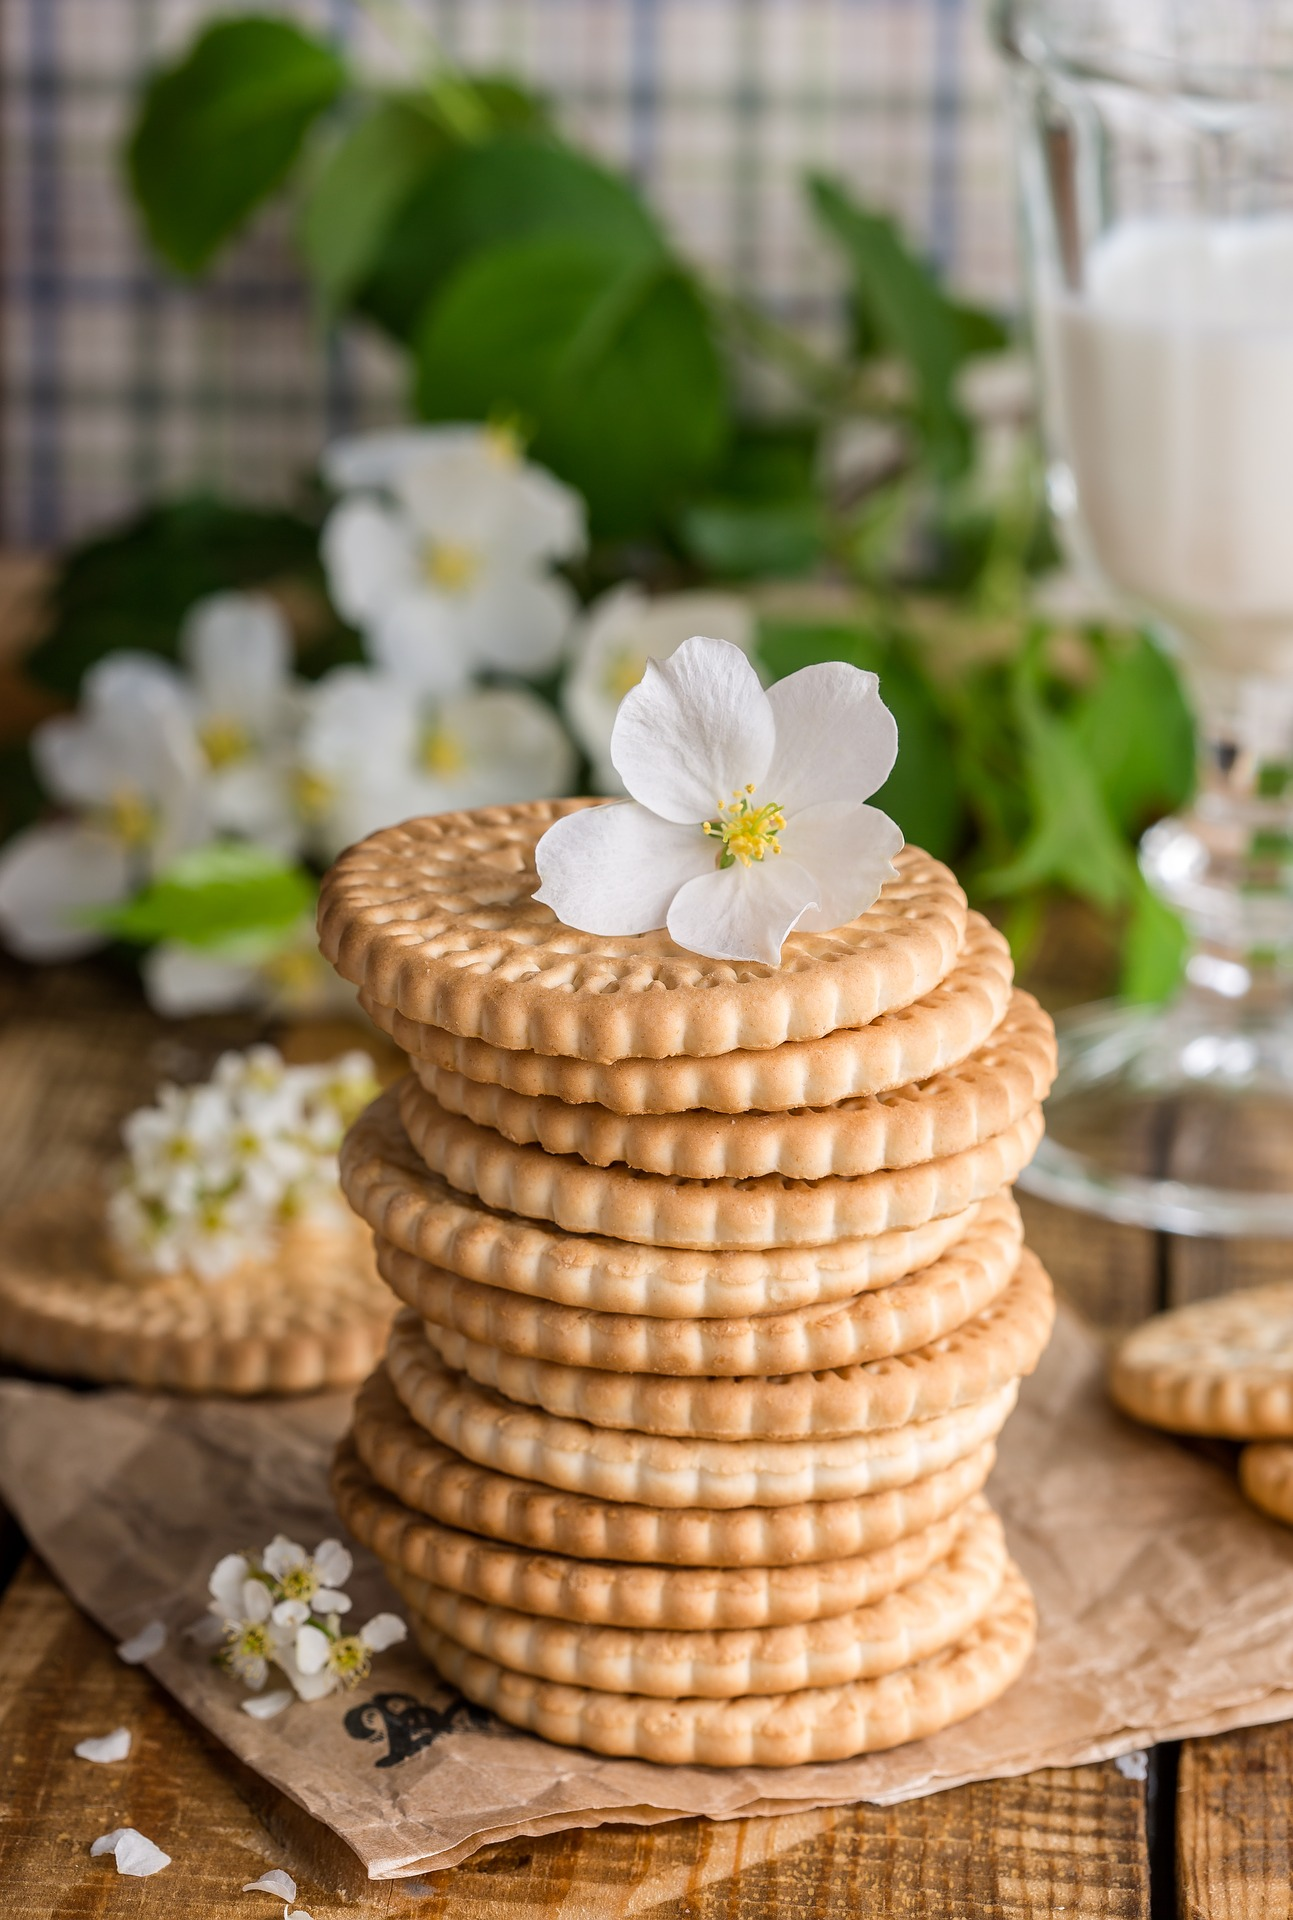 Flower on the Cookies, Biscuit, Cookie, Flower, Food, HQ Photo